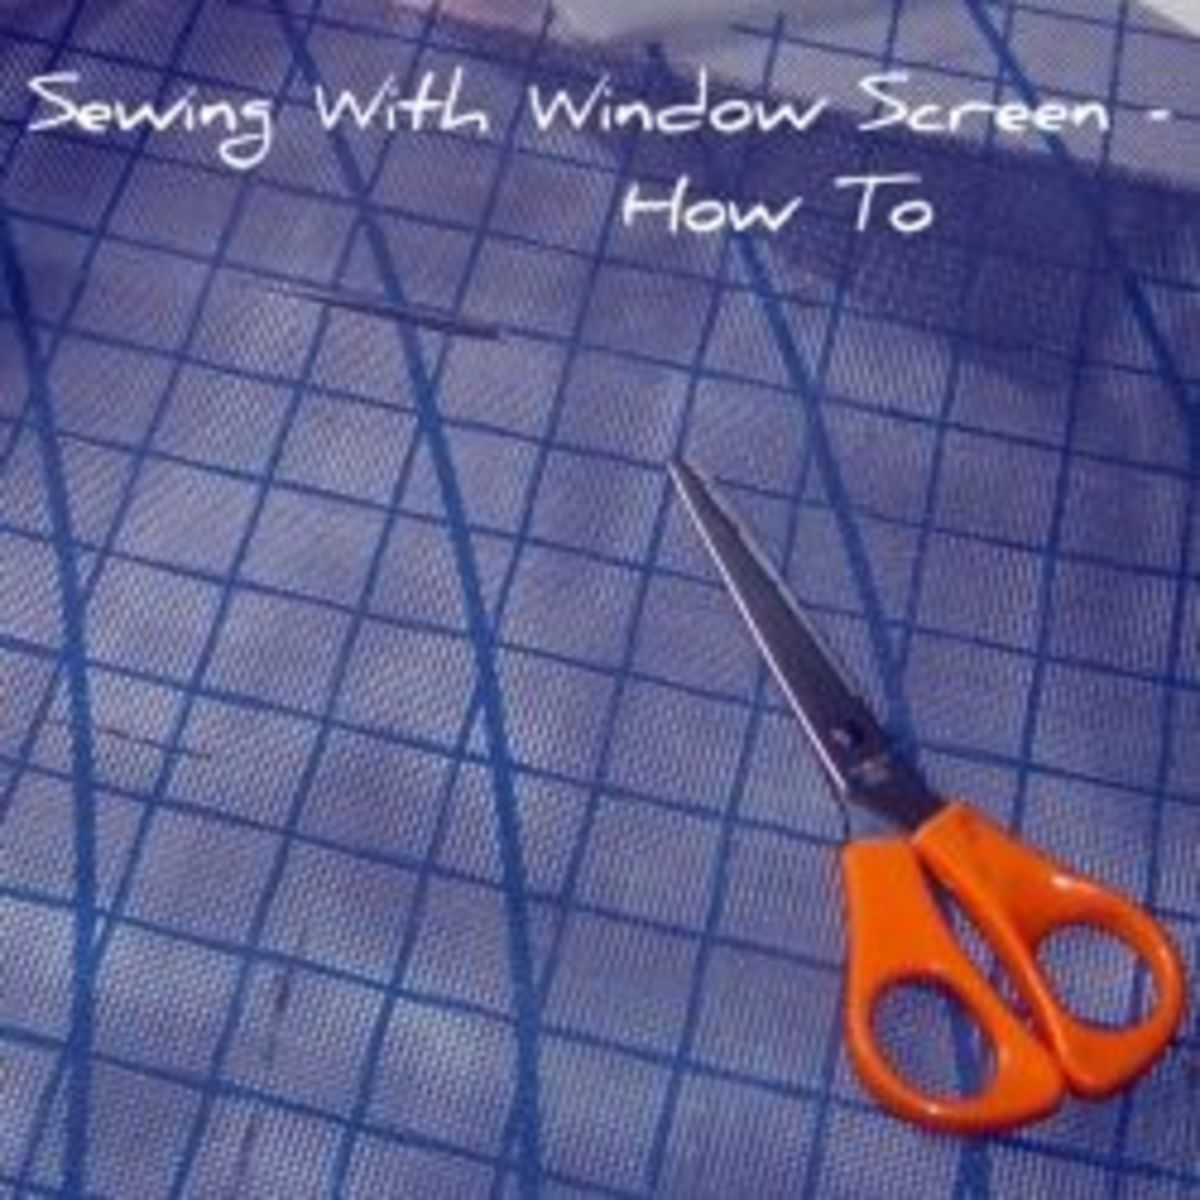 Sewing With Window Screen - How To